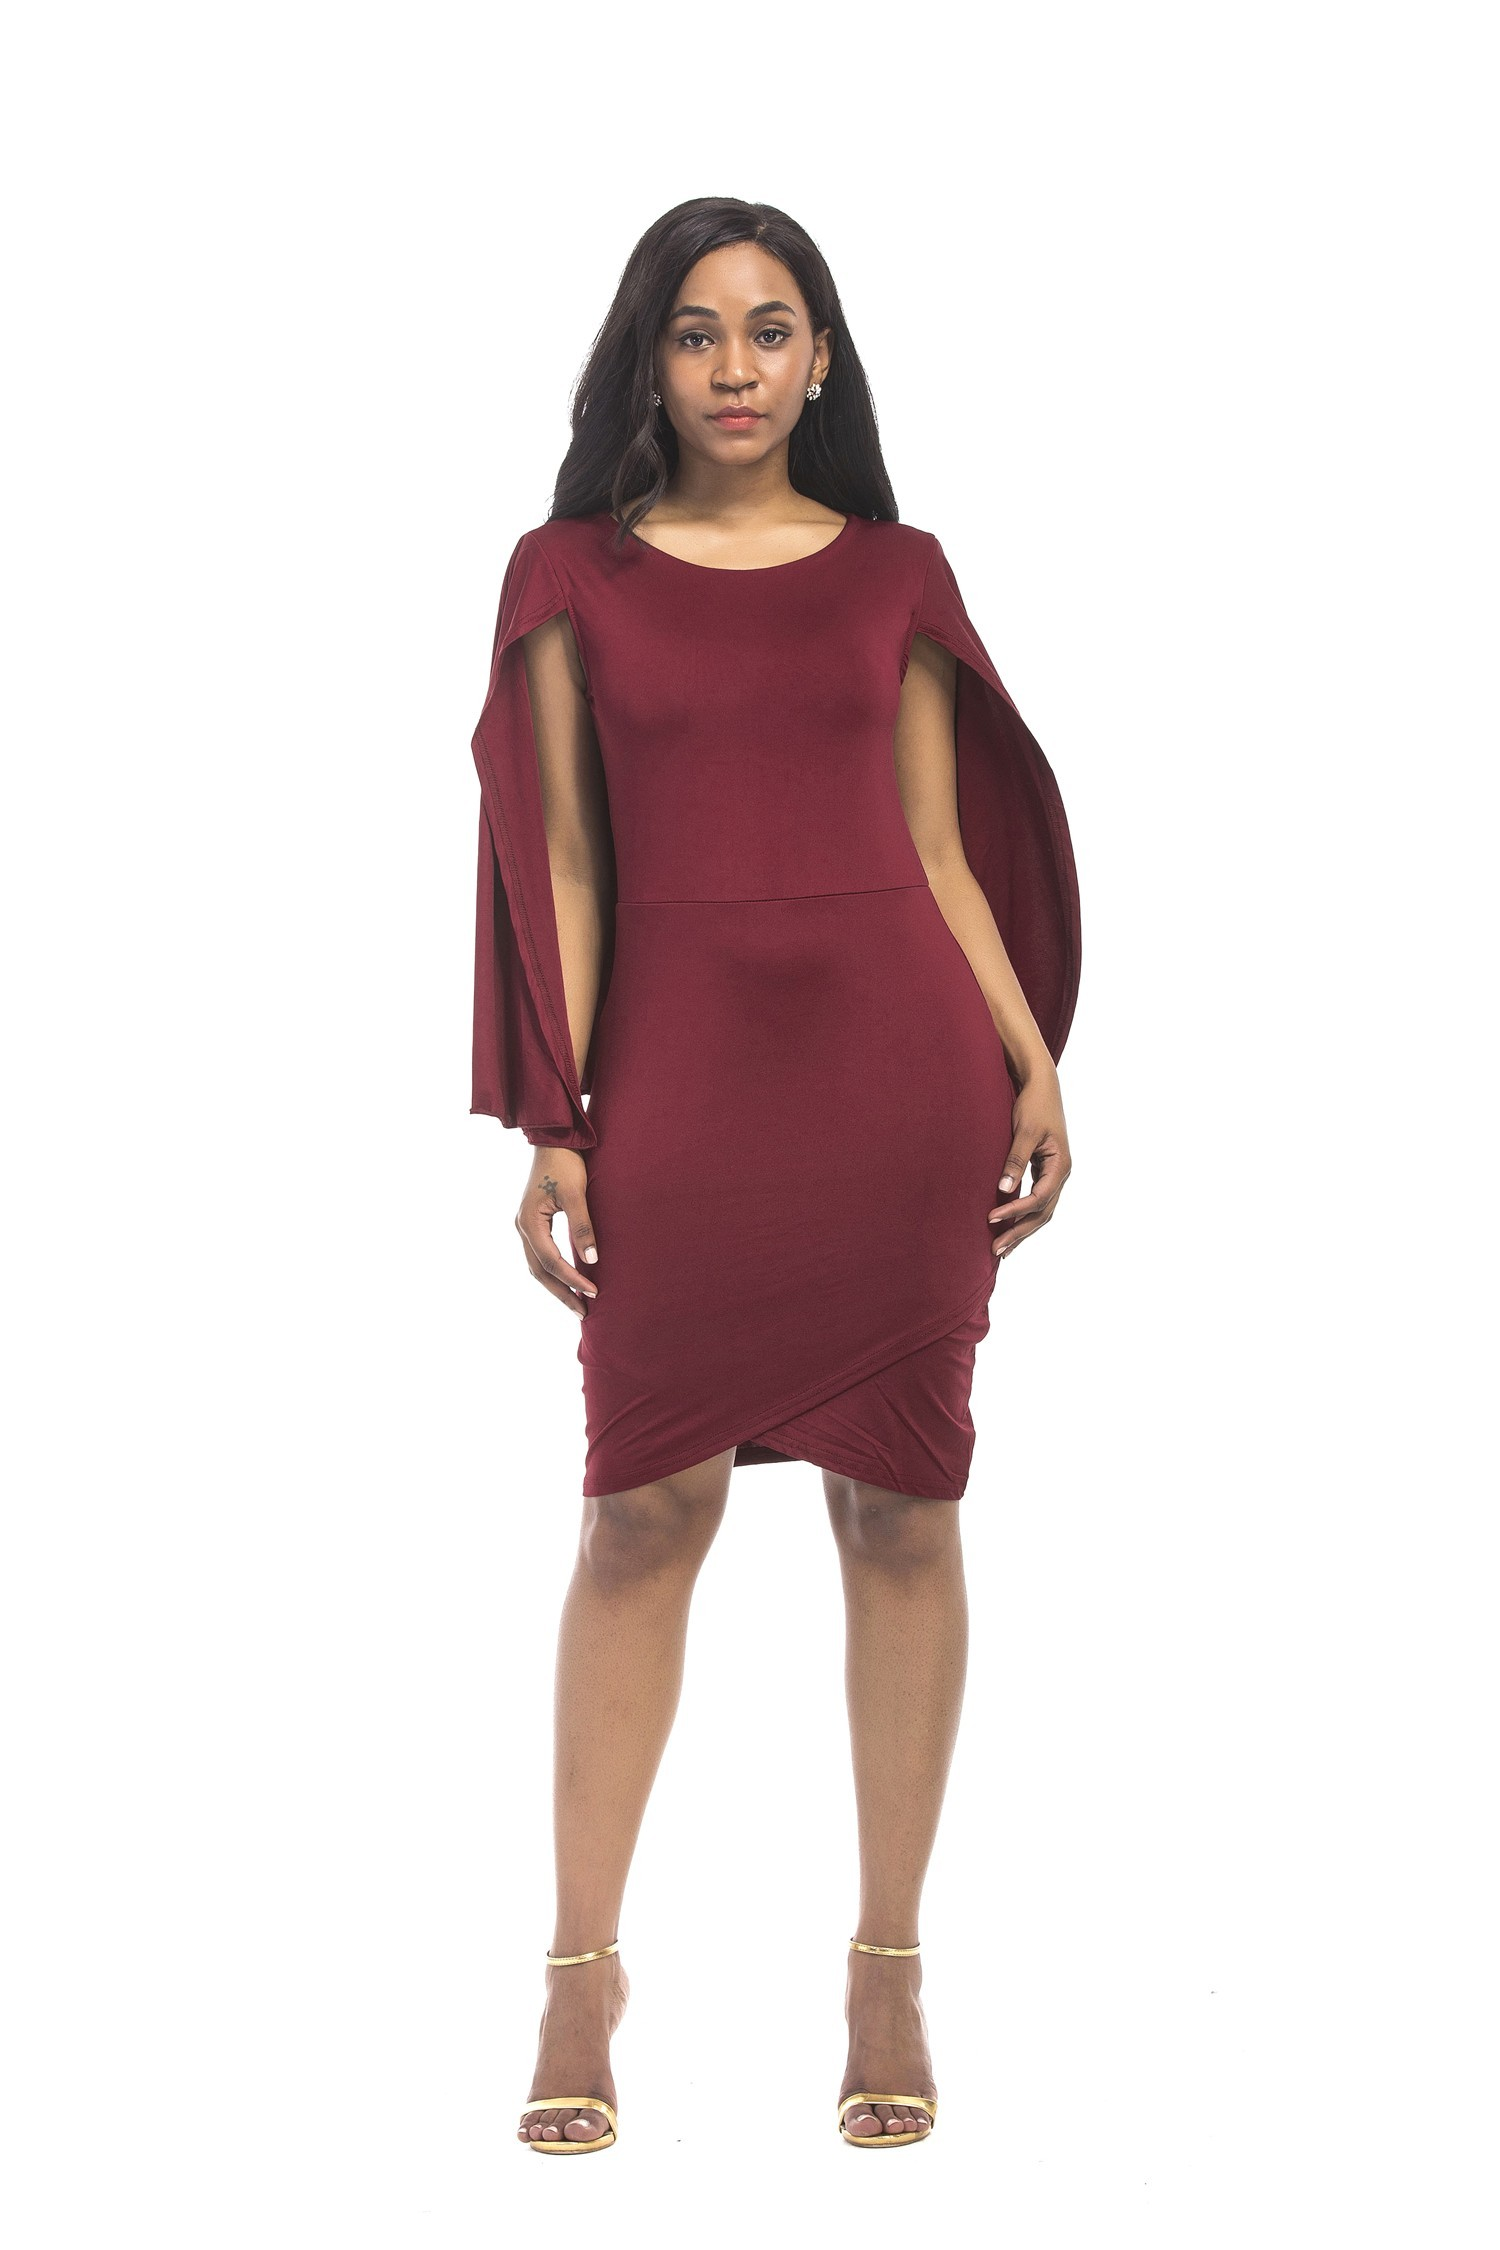 Scoop Neck Short Burgundy Jersey Plus Size Dress With Cape Sleeves